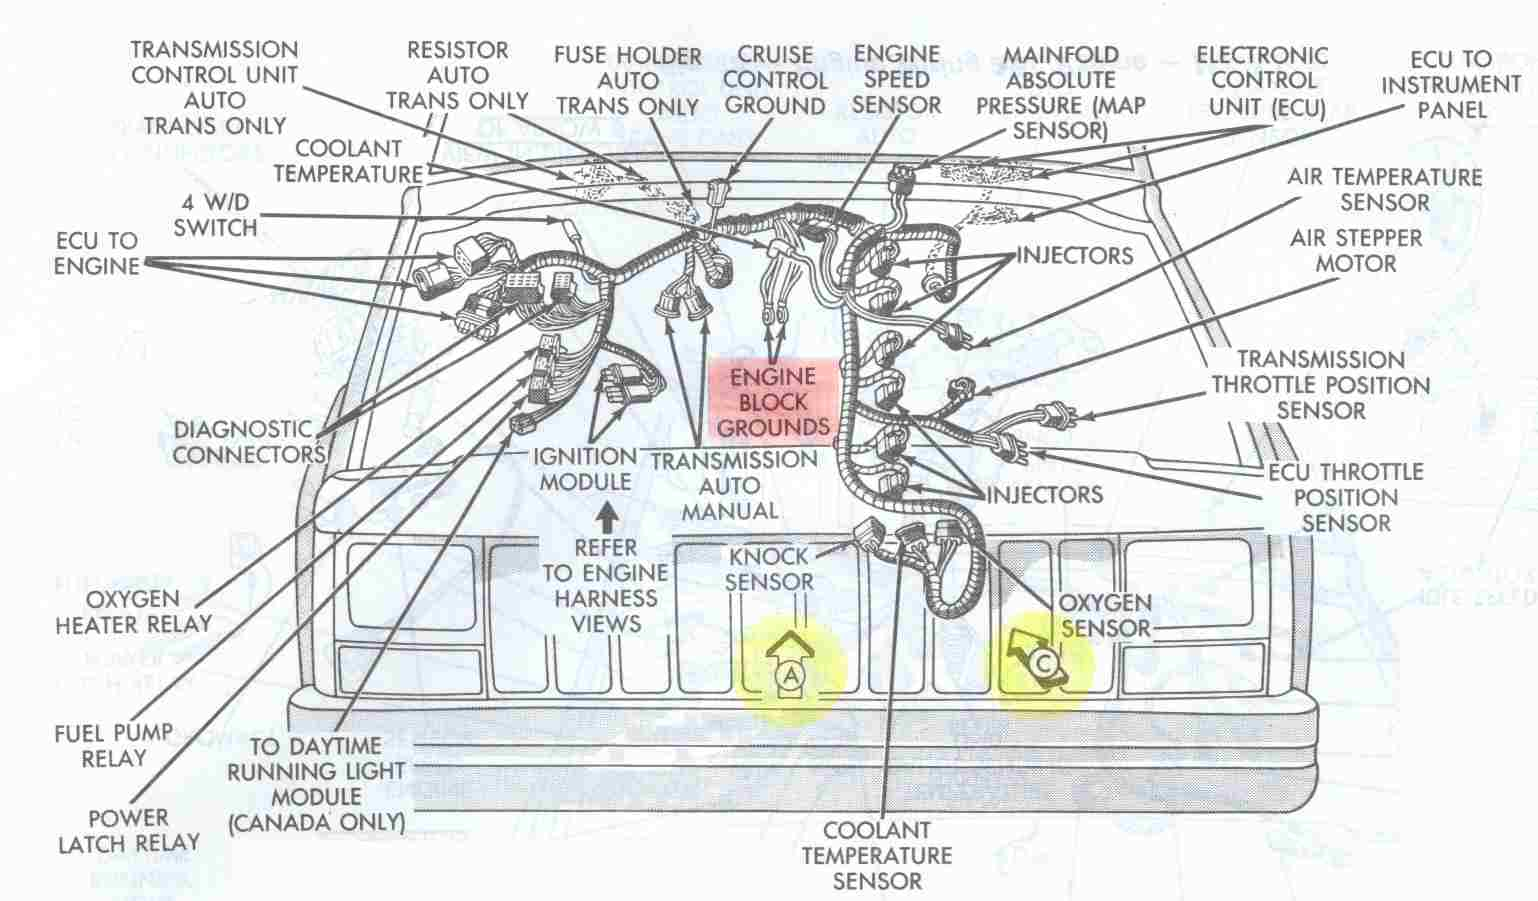 Electrical_Engine_Ground_Points_Overview jeep cherokee electrical diagnosing erratic behavior of engine 1996 jeep cherokee wiring diagram at cos-gaming.co